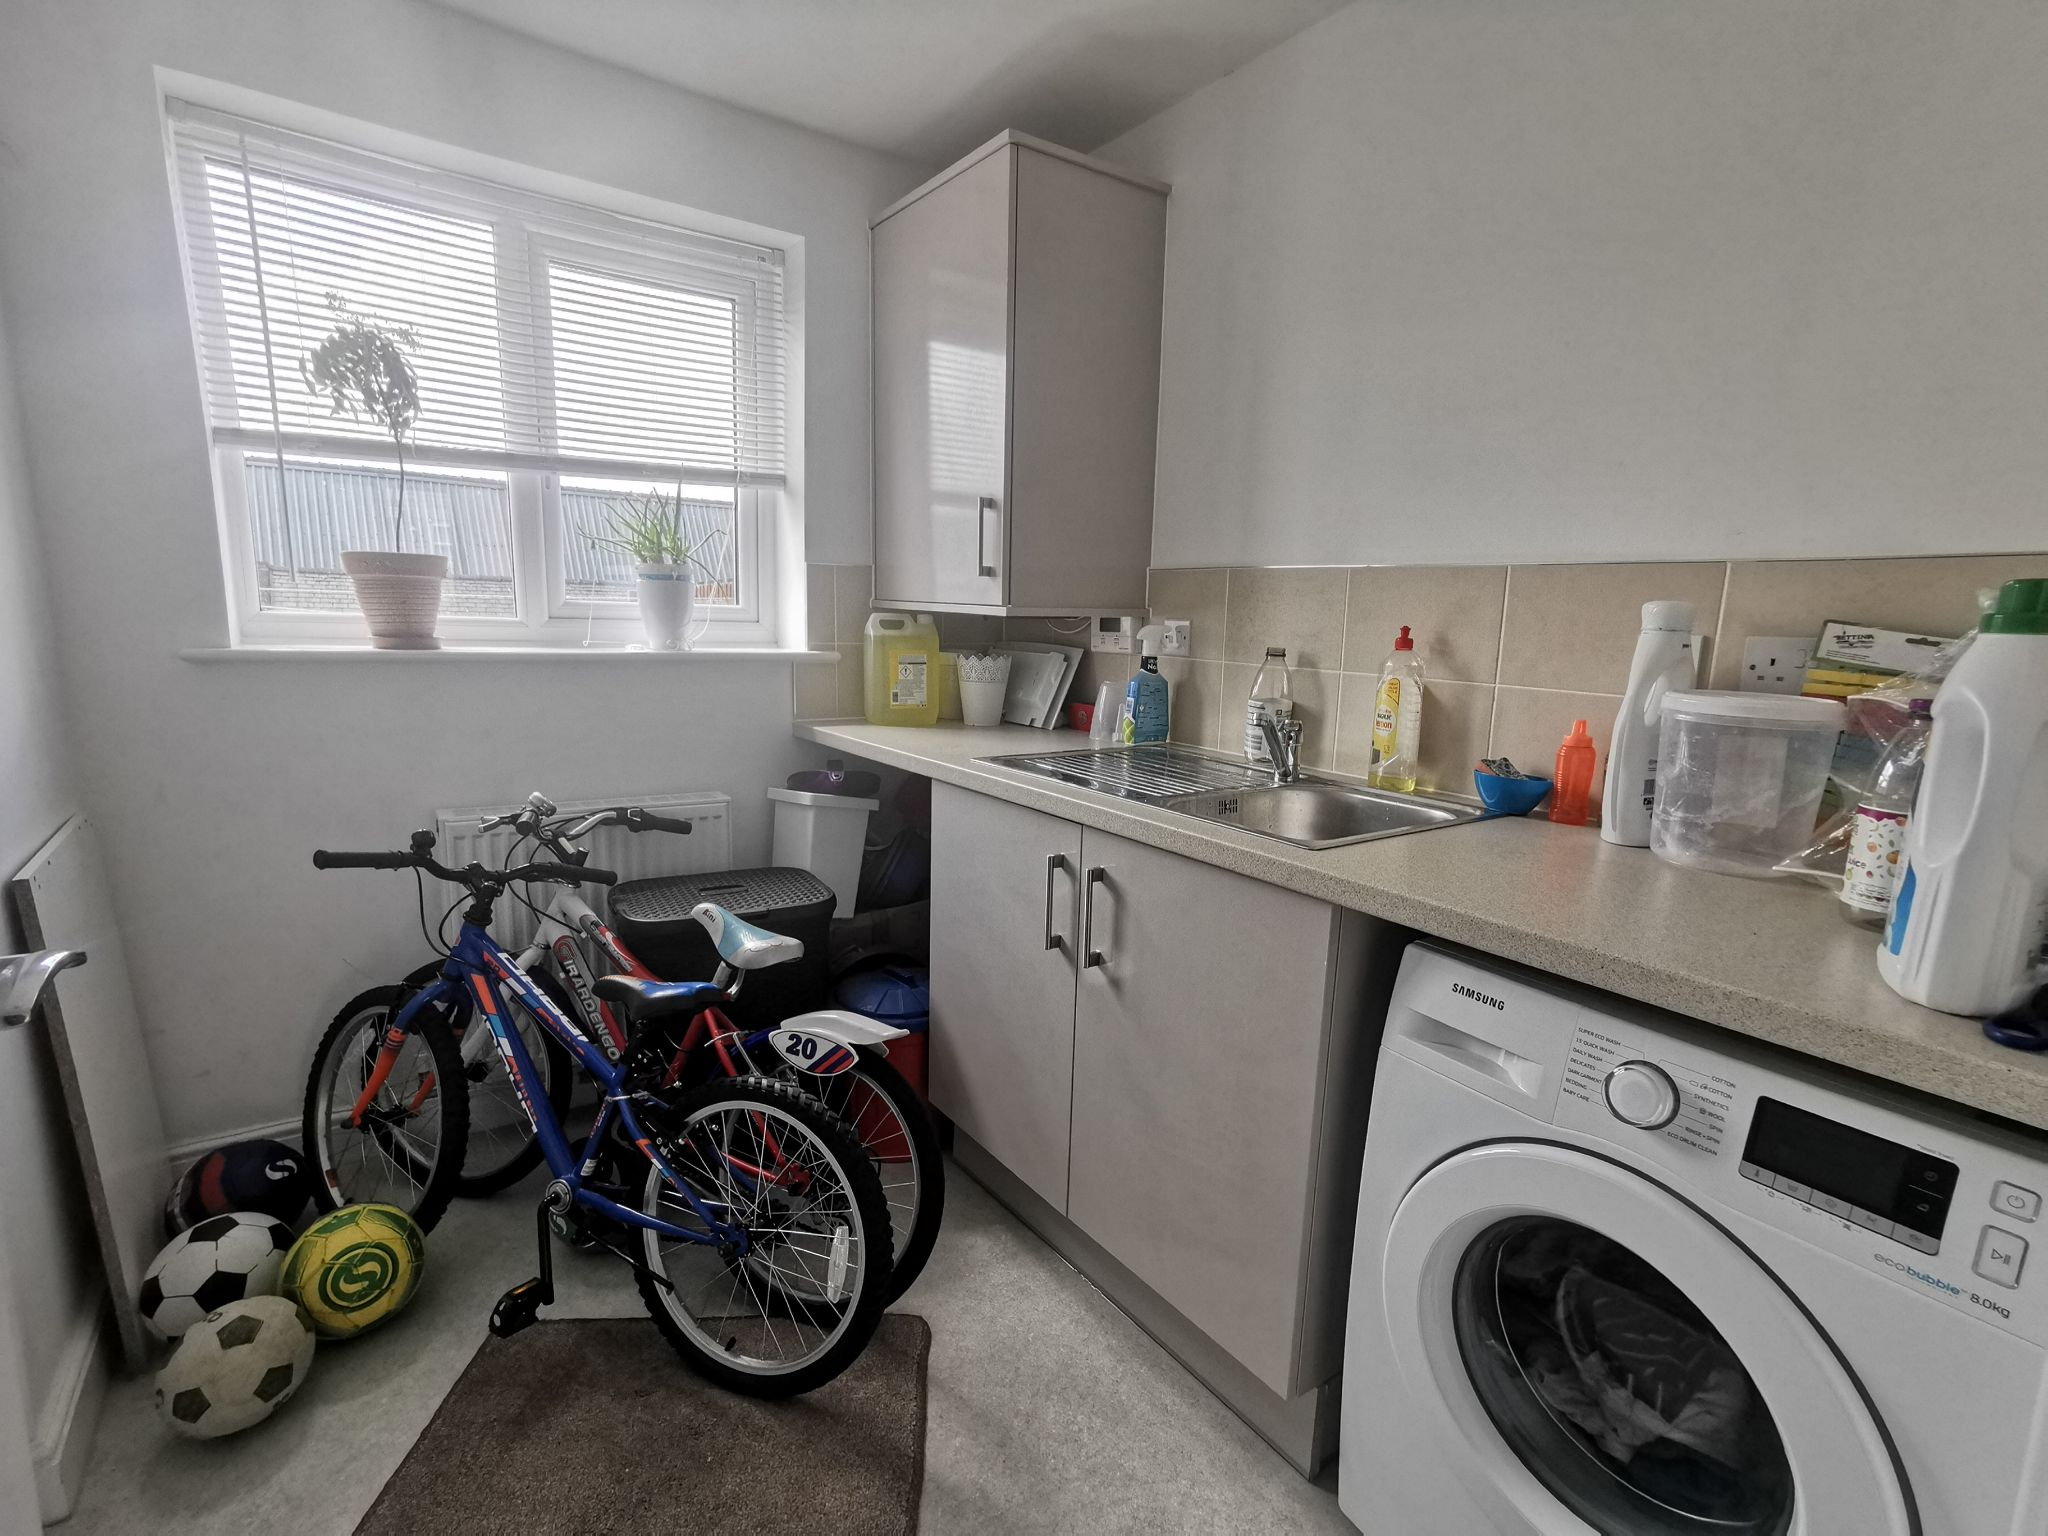 3 bedroom end terraced house For Sale in Bradford - Photograph 6.